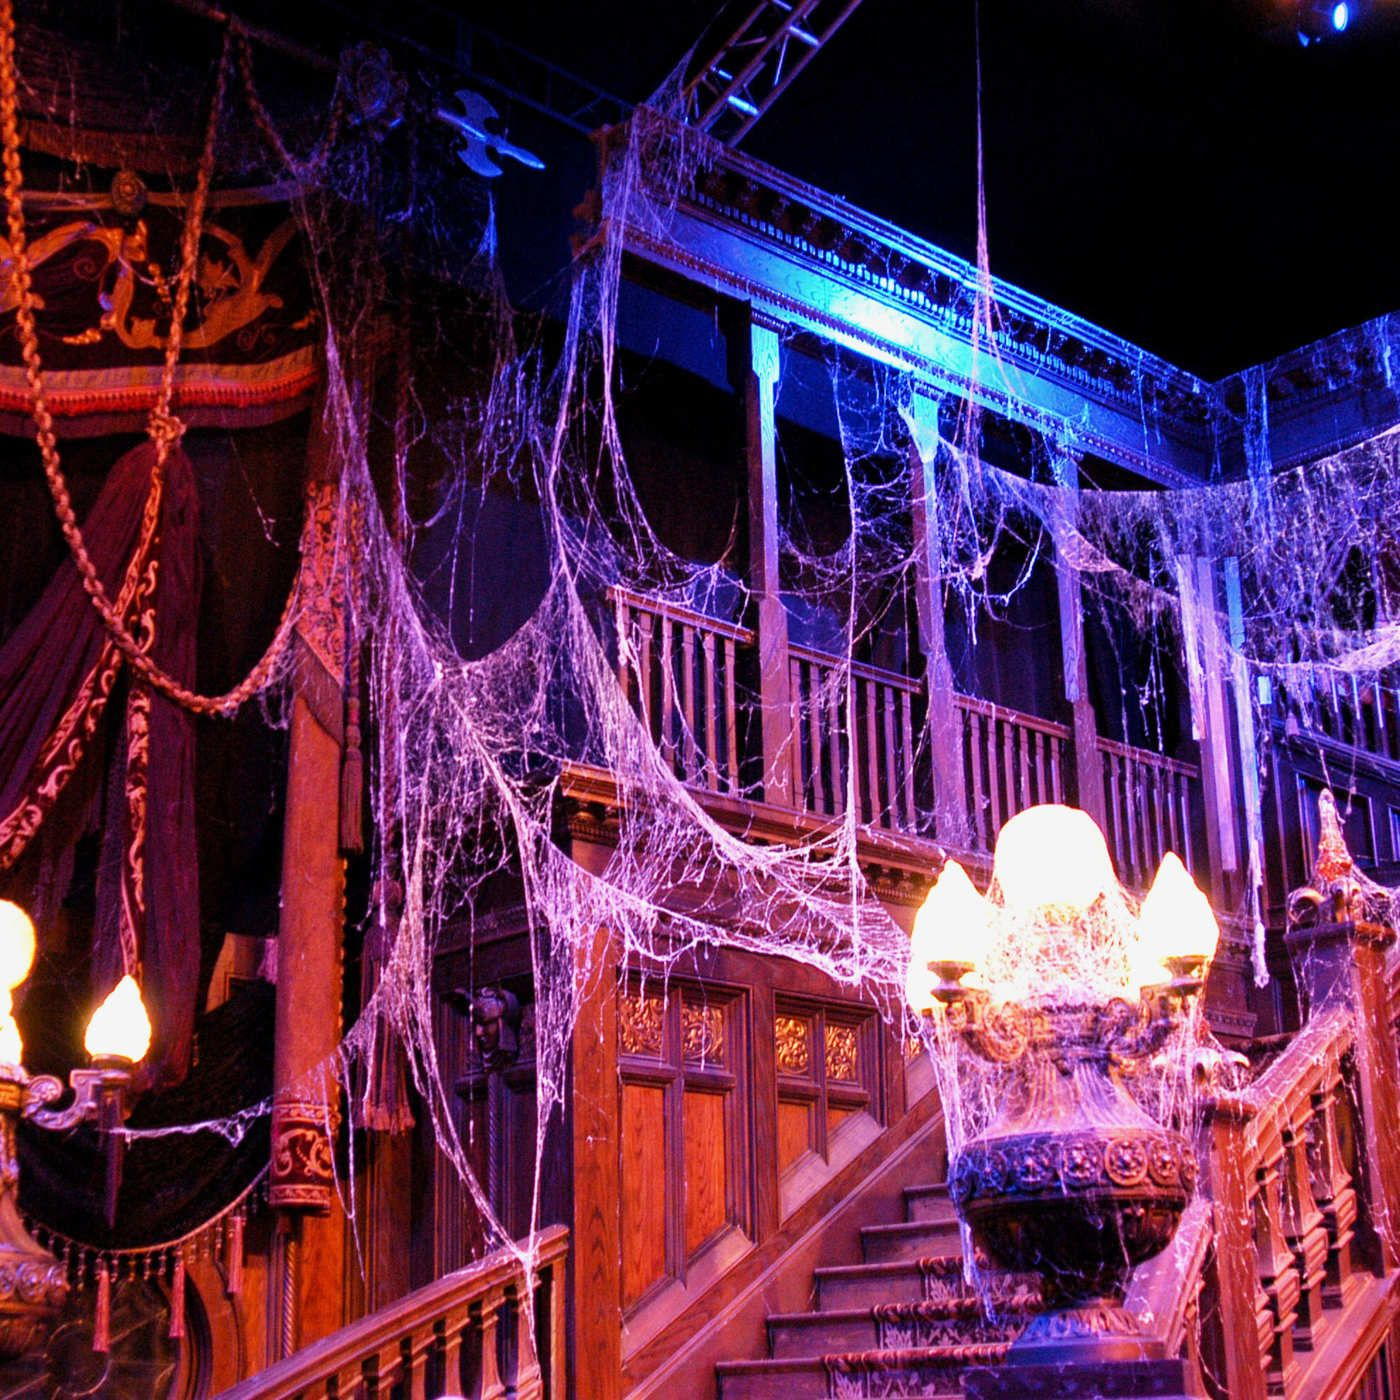 the best halloween decorations and props, according to haunted-house